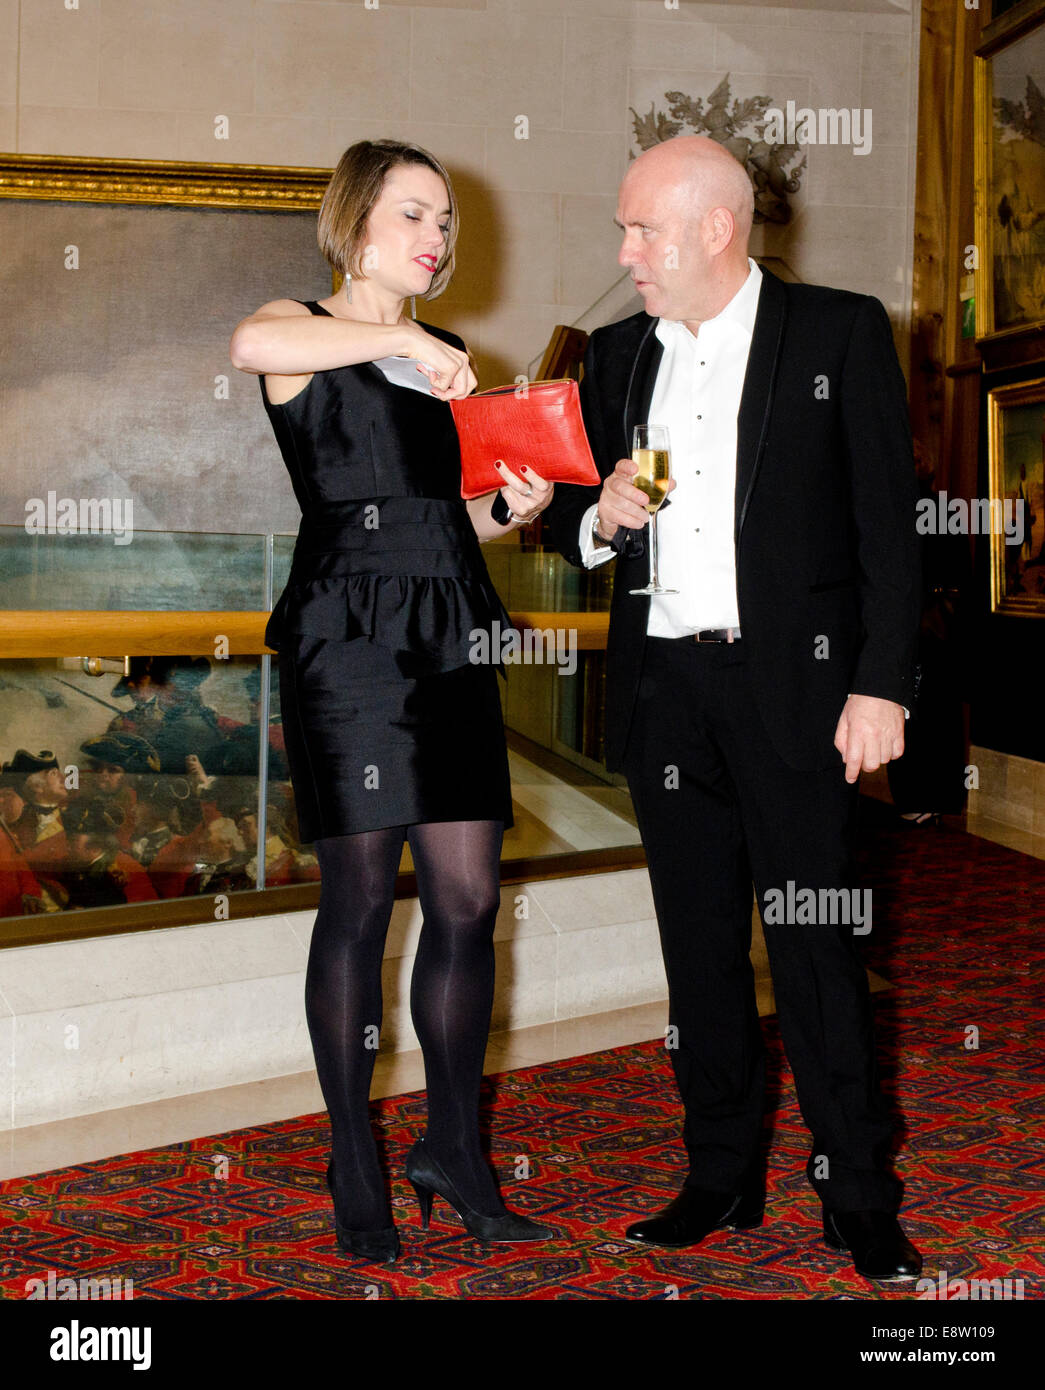 Man Booker Prize for Fiction 2014 winner Richard Flanagan for The Narrow Road to the Deep North with his publicist - Stock Image